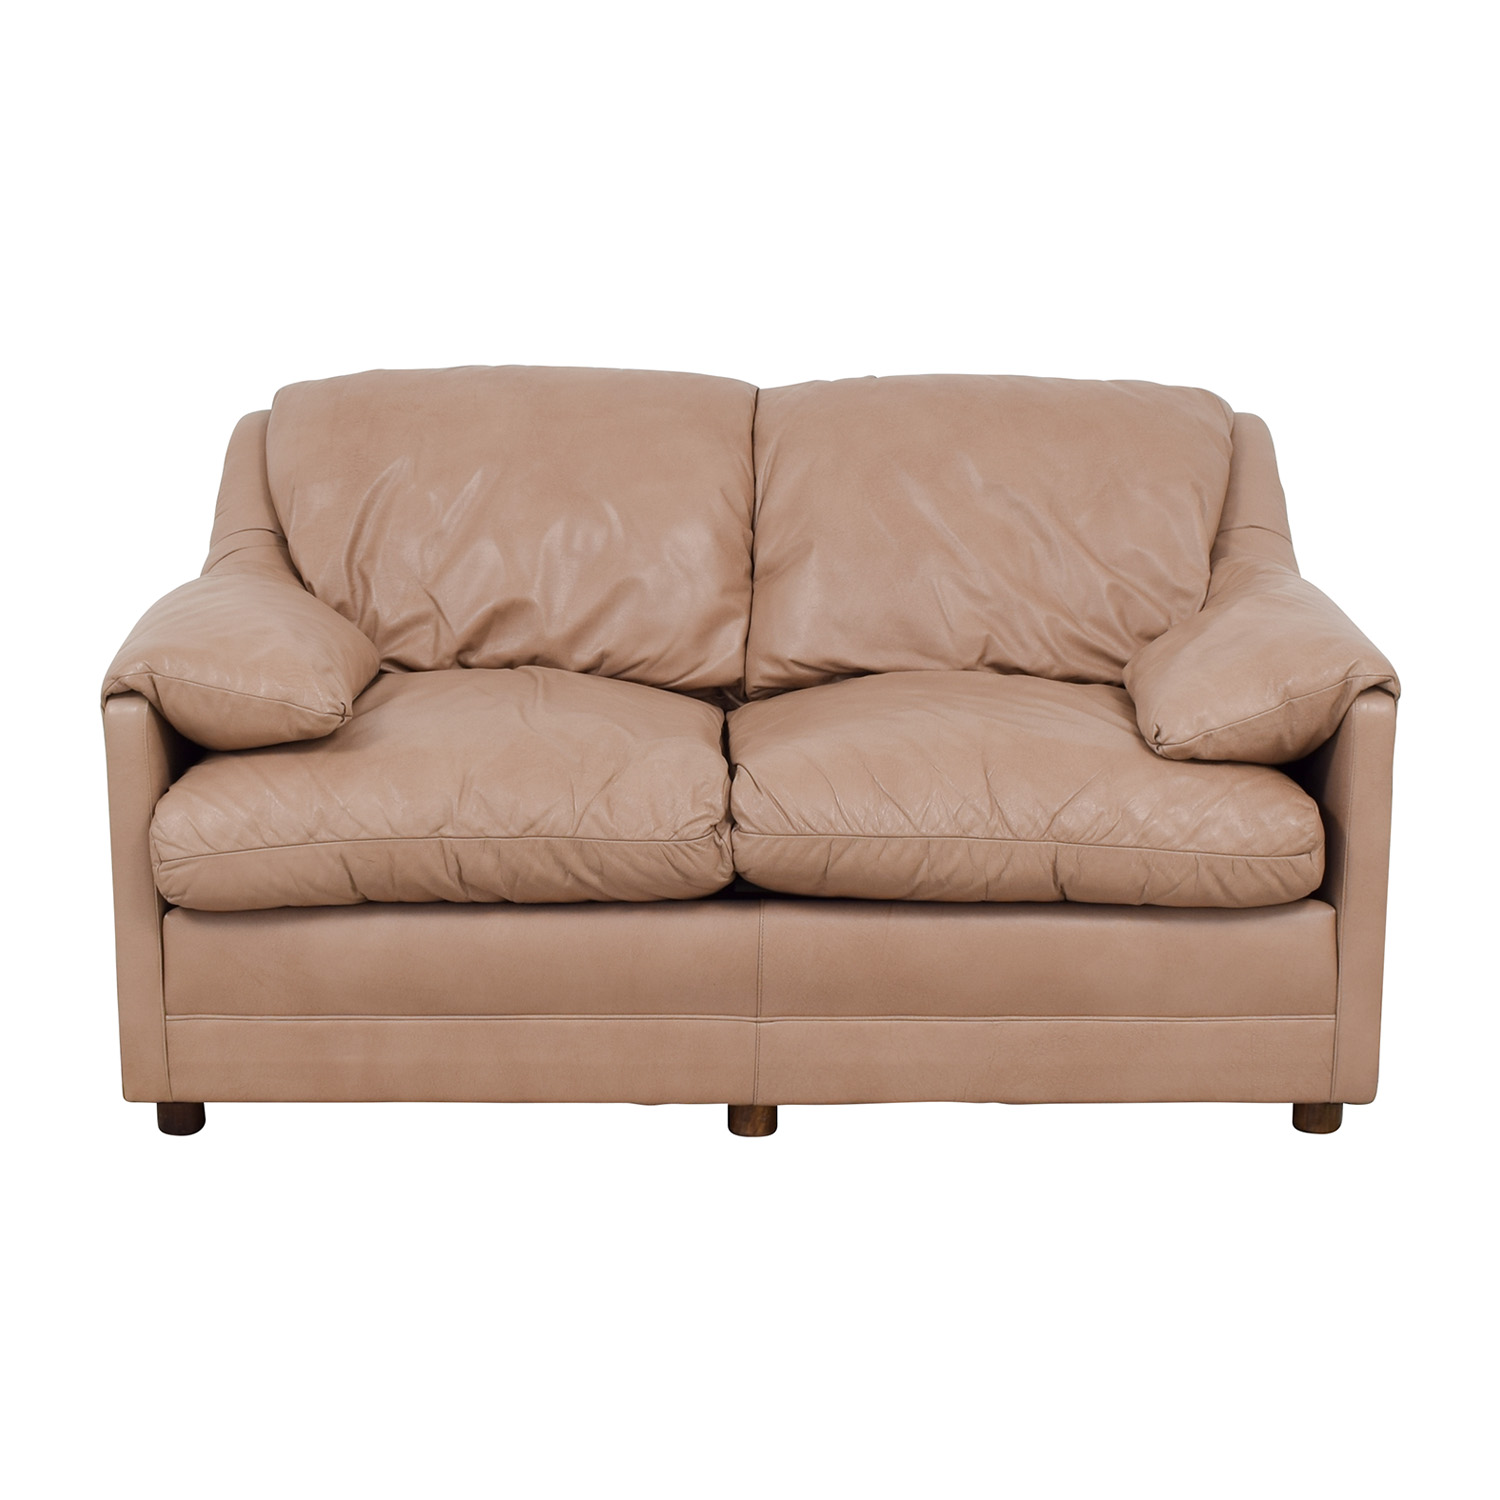 878130db3f0 66% OFF - Hancock and Moore Hancock and Moore Leather Two Seat Love Seat /  Sofas